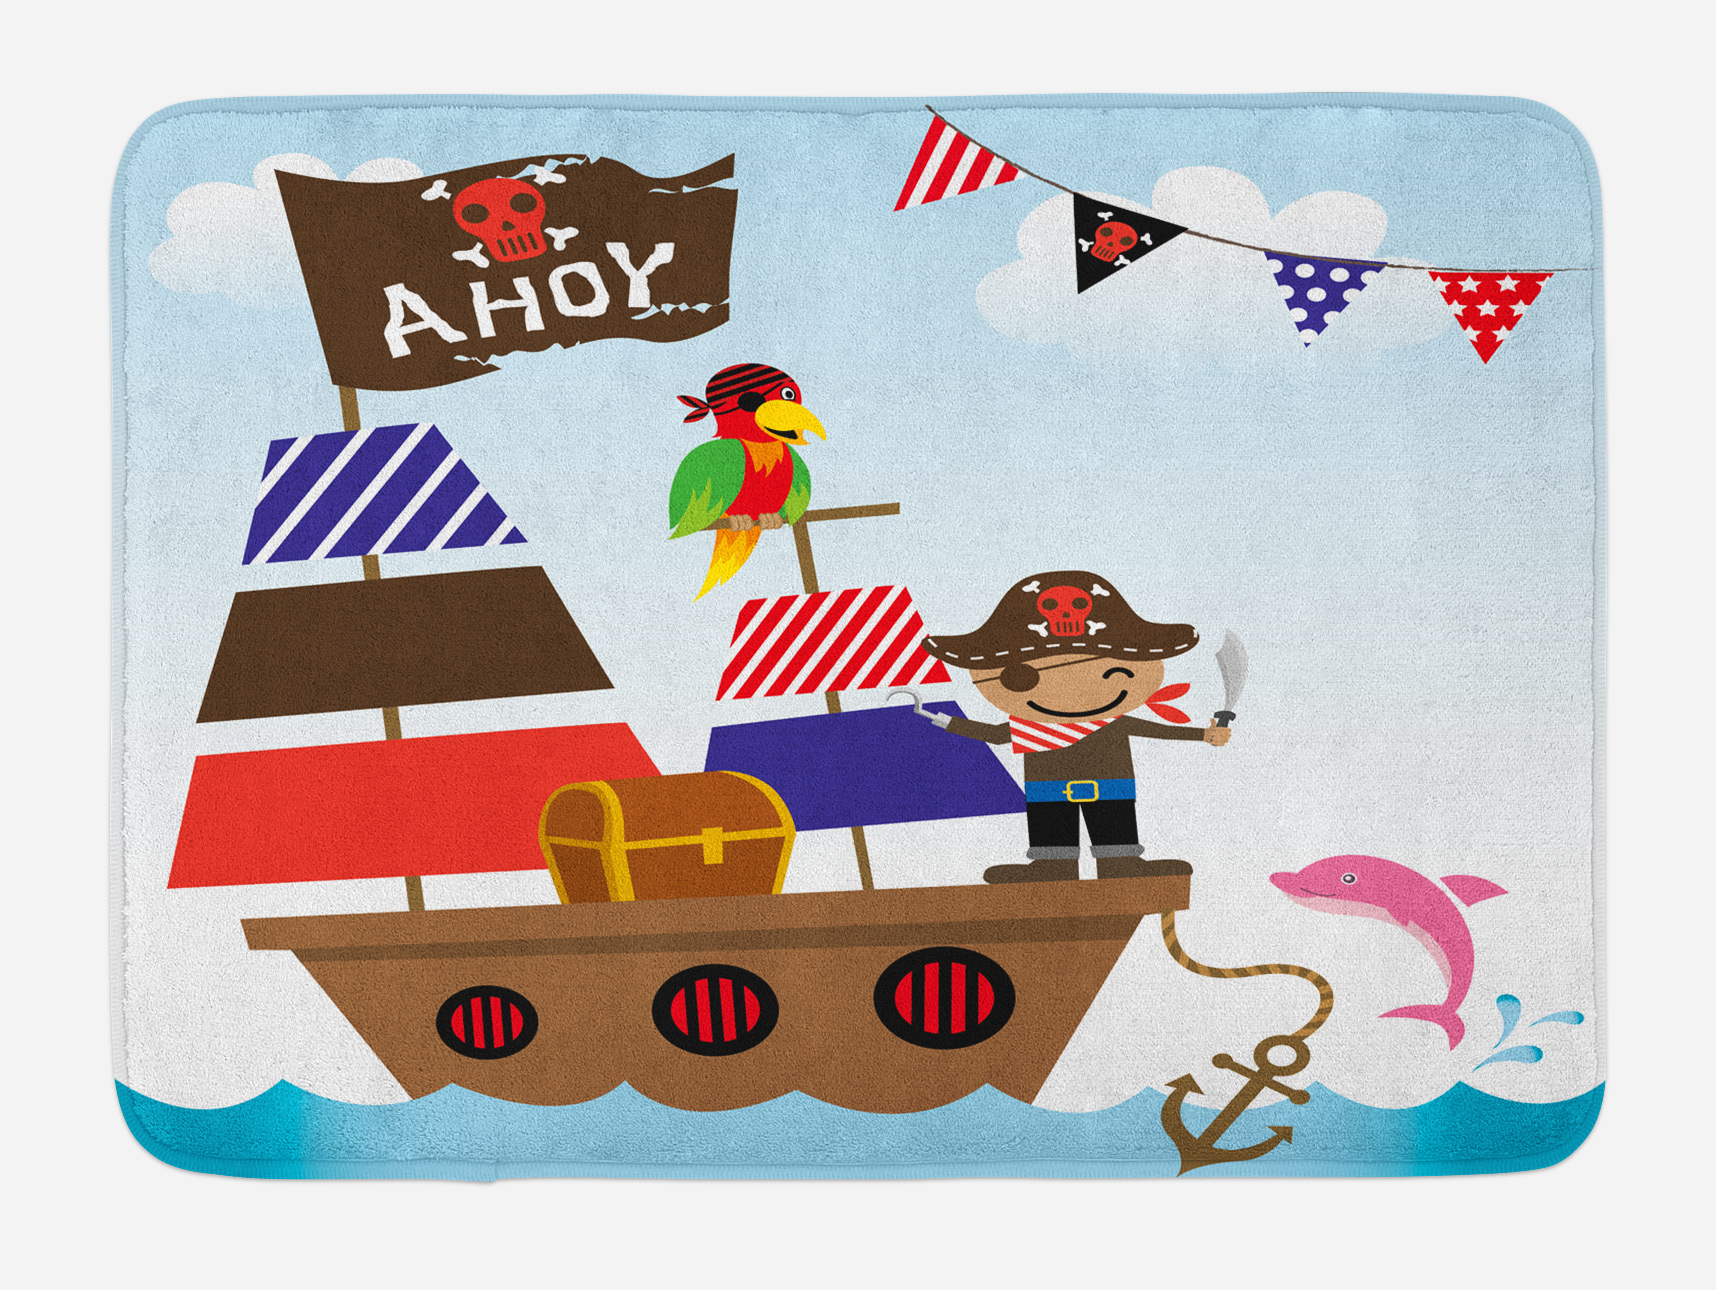 Ahoy Its a Boy Bath Mat, Cute Pirate Kids Treasure Chest with Ship on Ocean Background... by 3decor llc